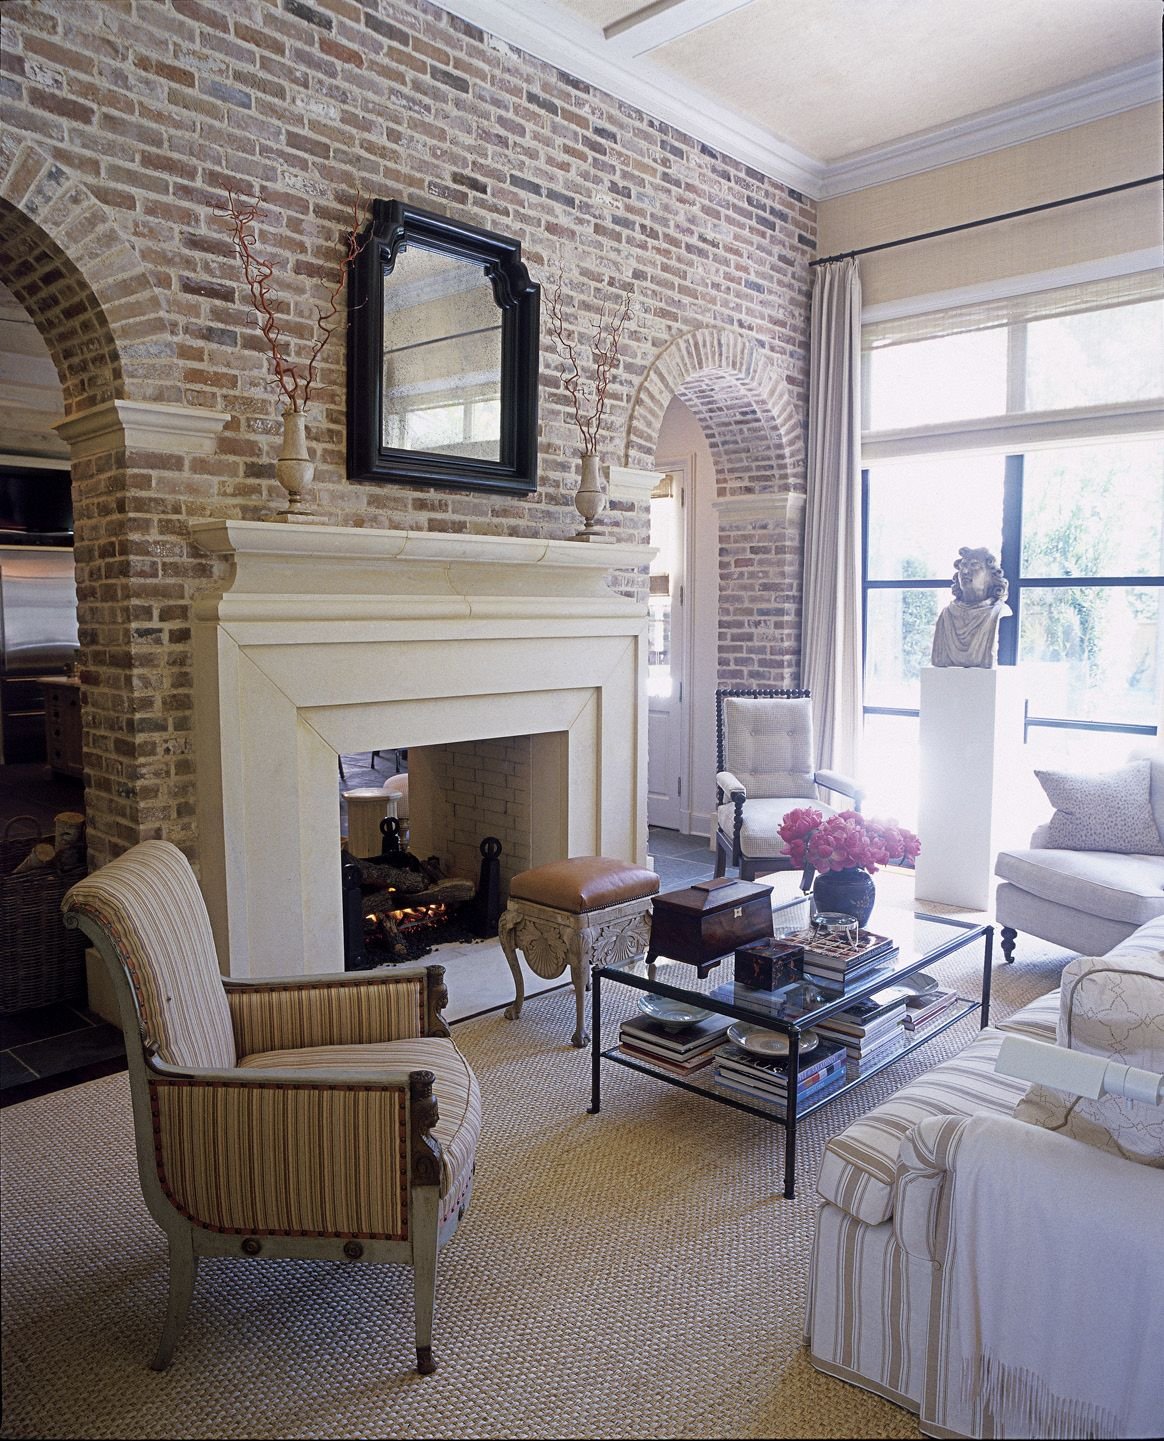 All The Pros And Cons Of Exposed Brick Home House Brick Interior